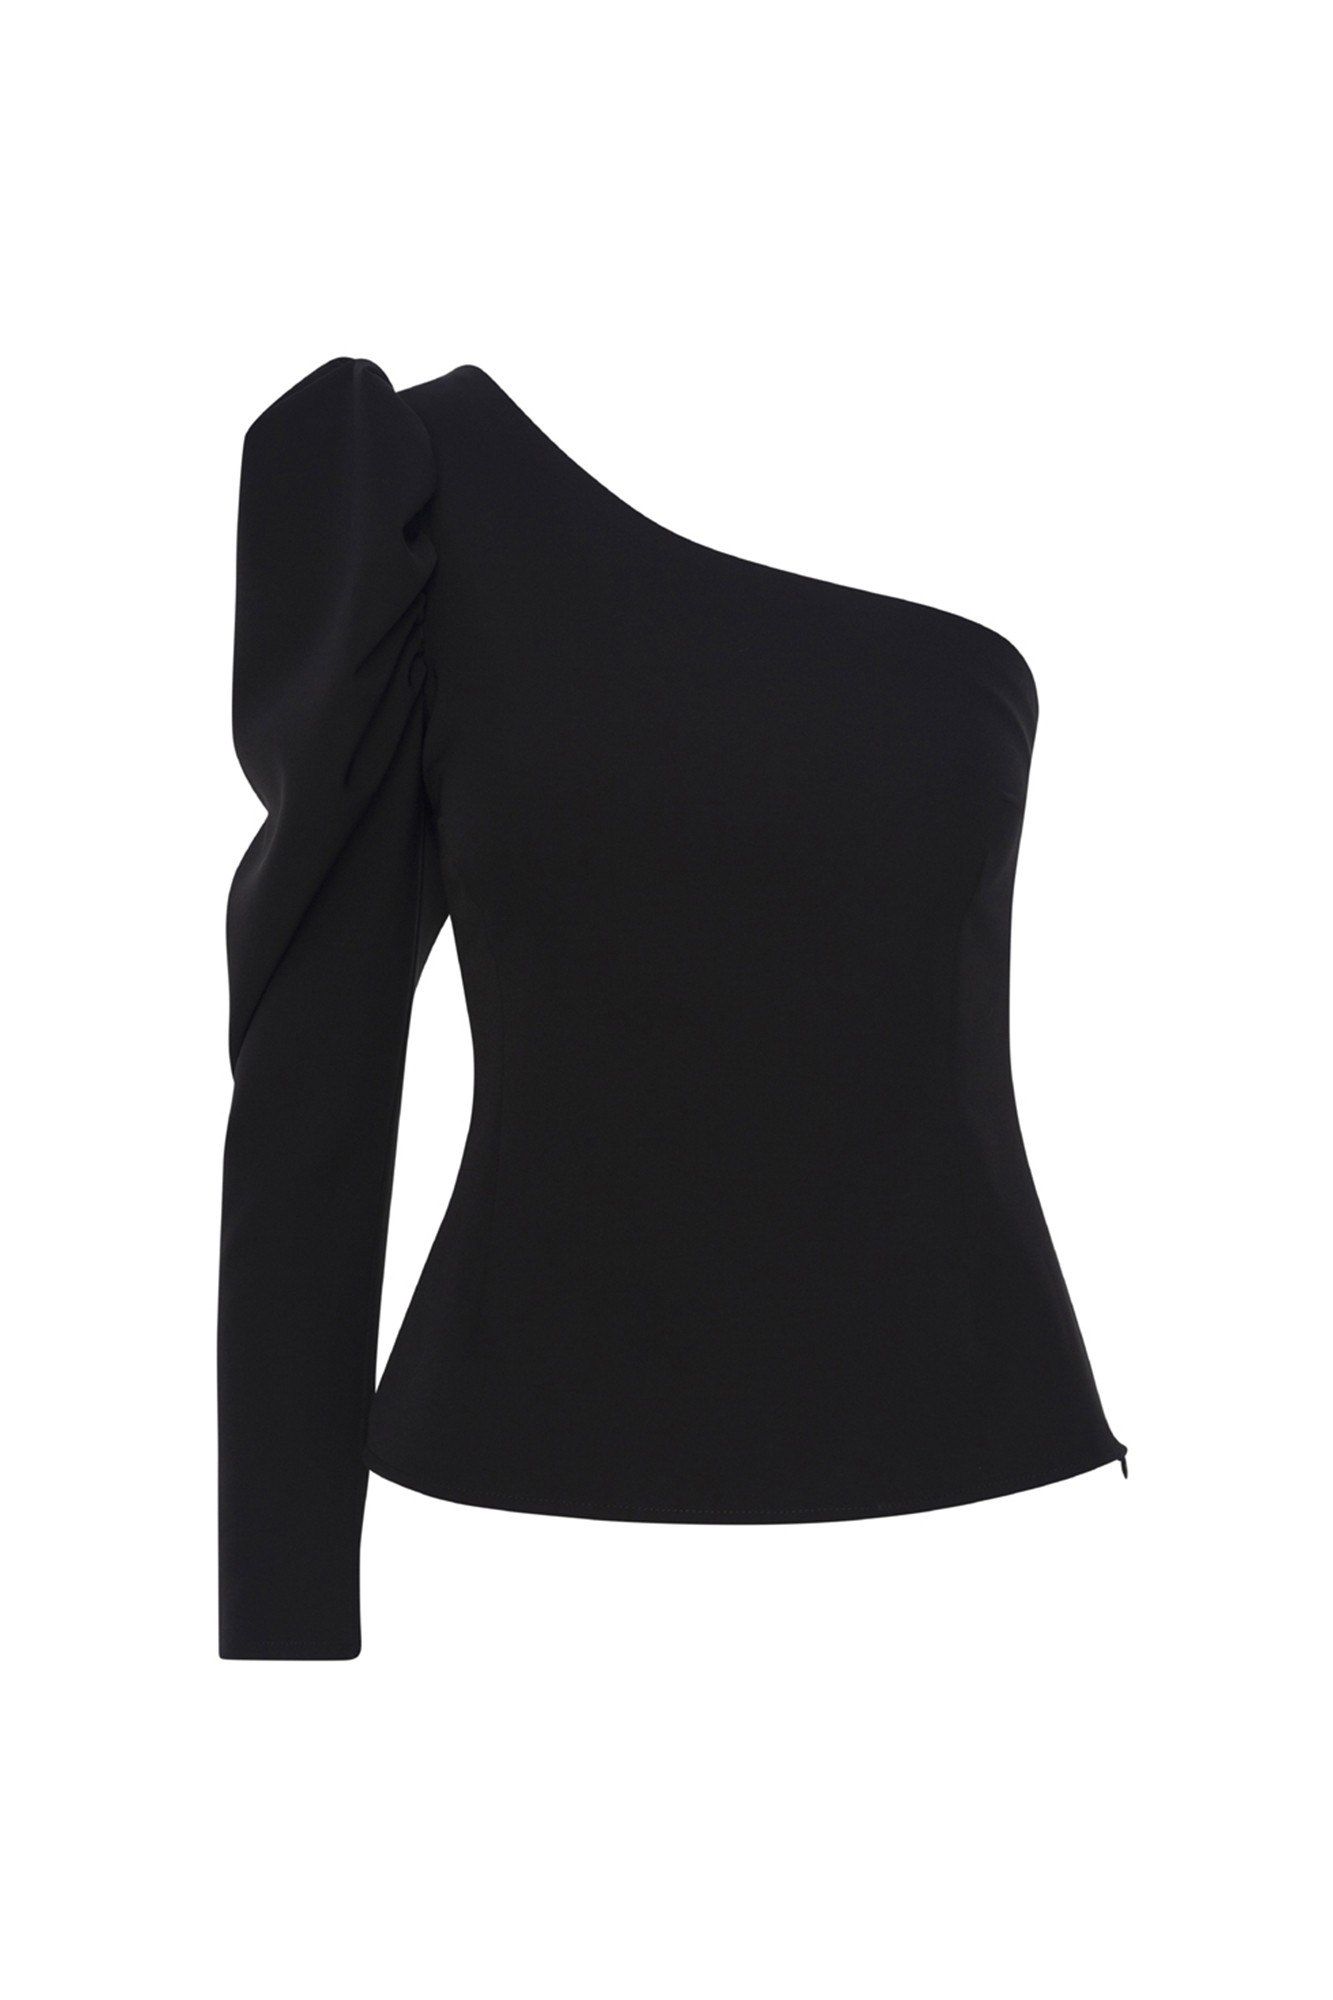 SAMUELLE BLACK TOP